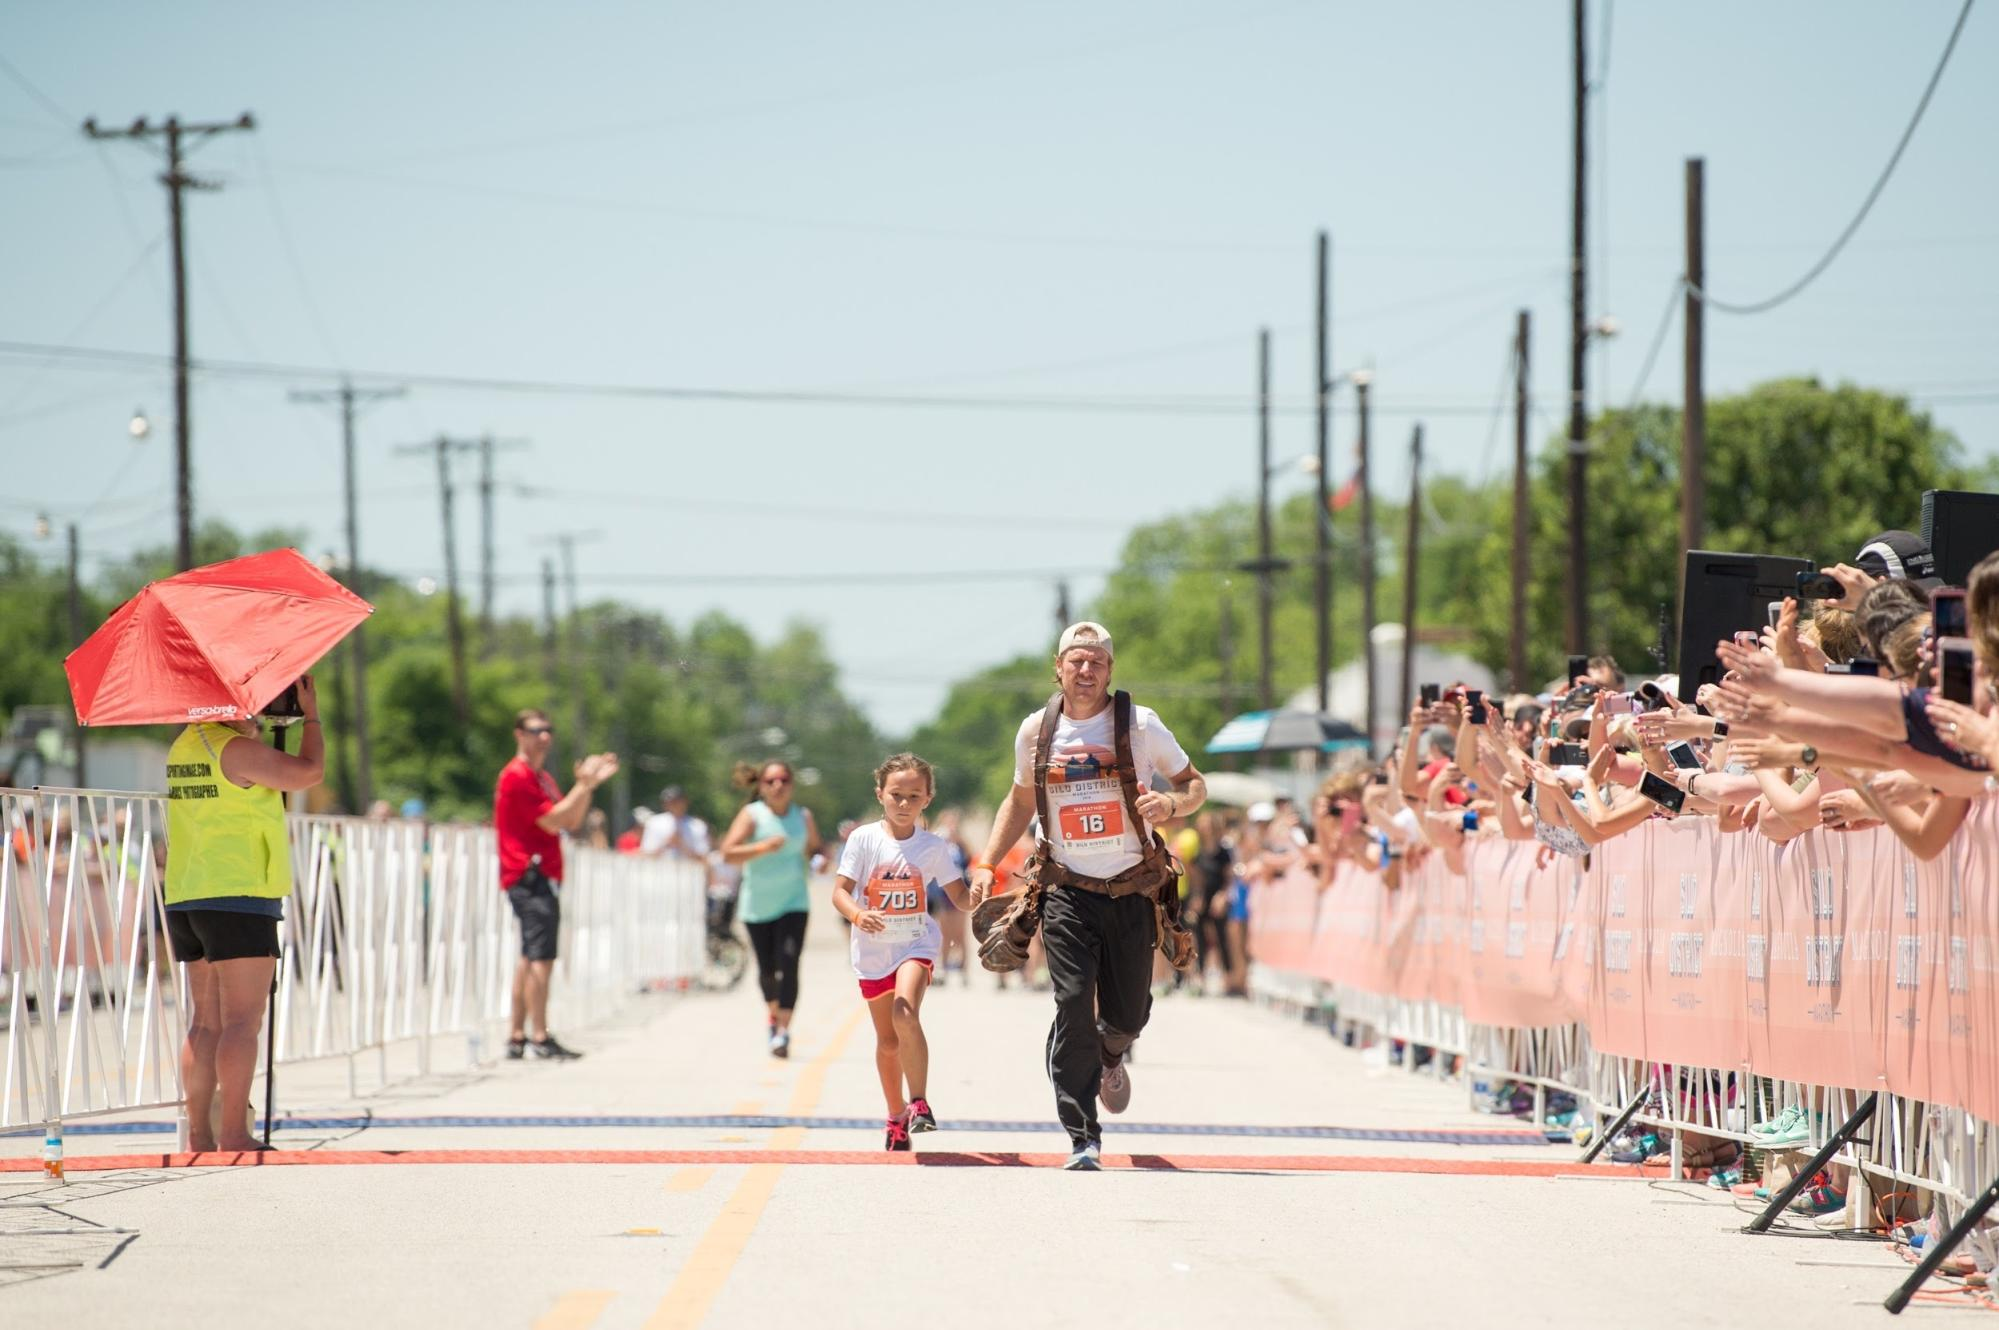 Chip Gaines Reveals the Incredible Reason He Wore His Toolbelt While Running His Marathon silo-district-marathon-chip-gaines-running-with-family-daughter-finish-line-brave-like-gabe-waco